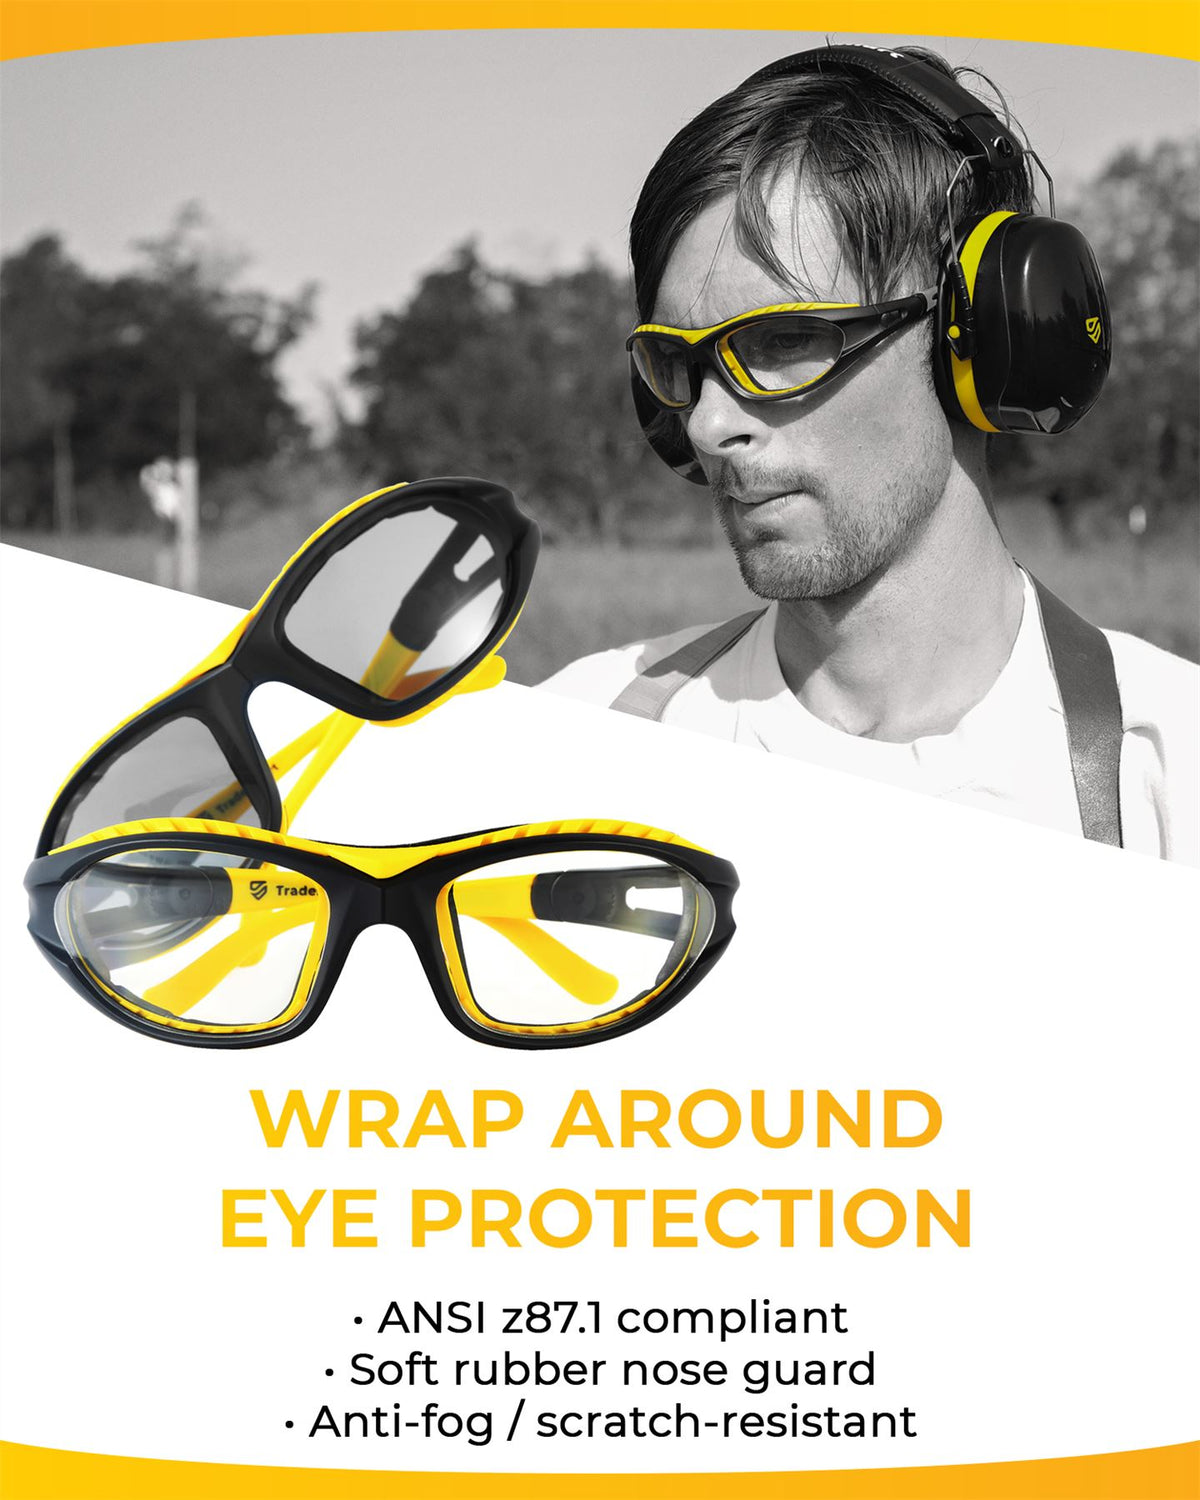 PREMIUM - Earmuffs and Indoor Glasses - Comes with Heavy Duty Case